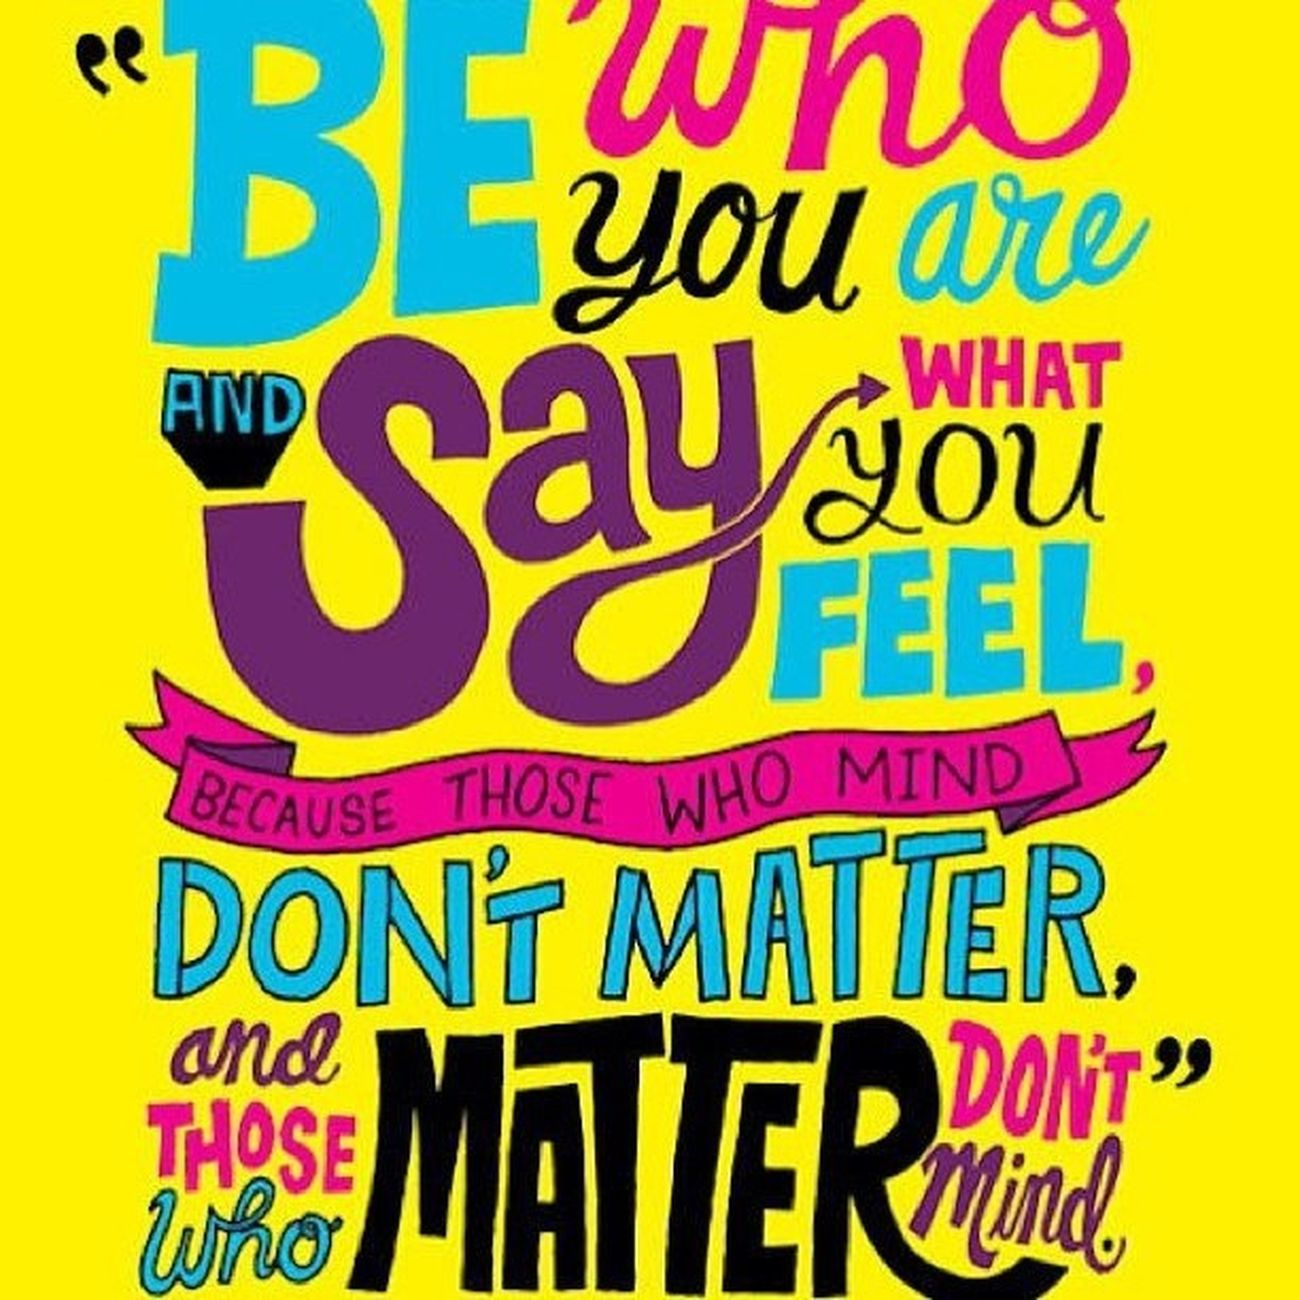 Beyourself Bewhoyouare Saywhat Youfeel opinionsmattermindcarefriends